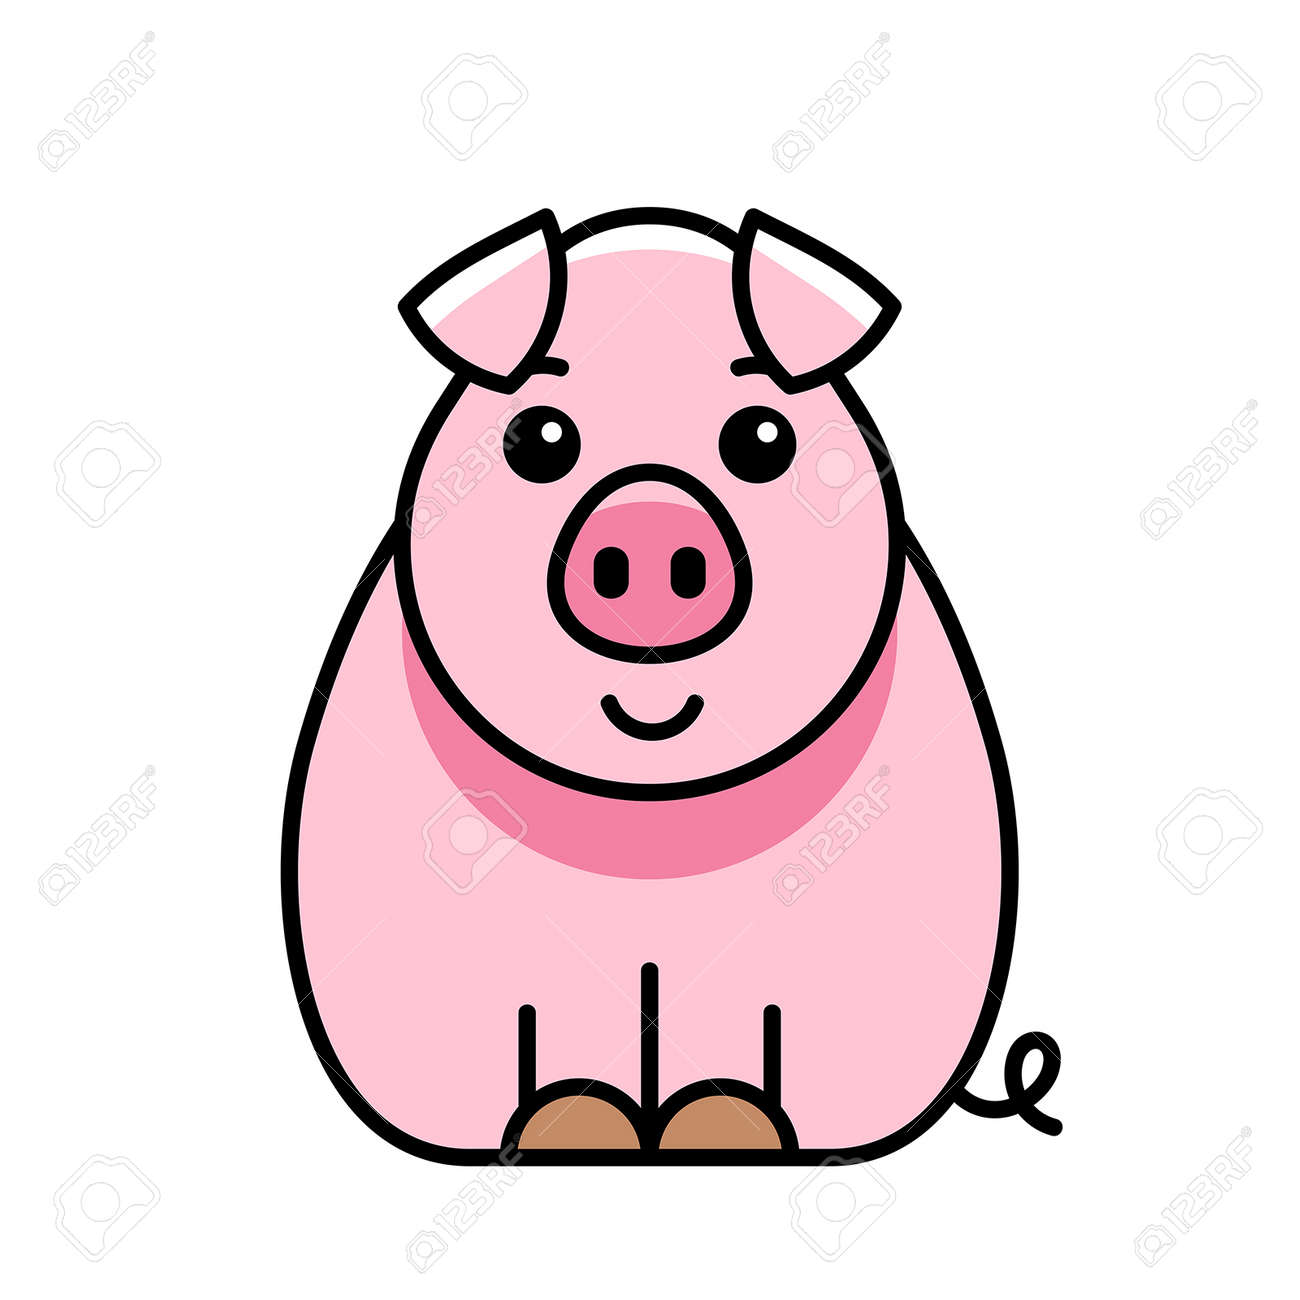 Pig icon. Icon design. Template elements - 171231669